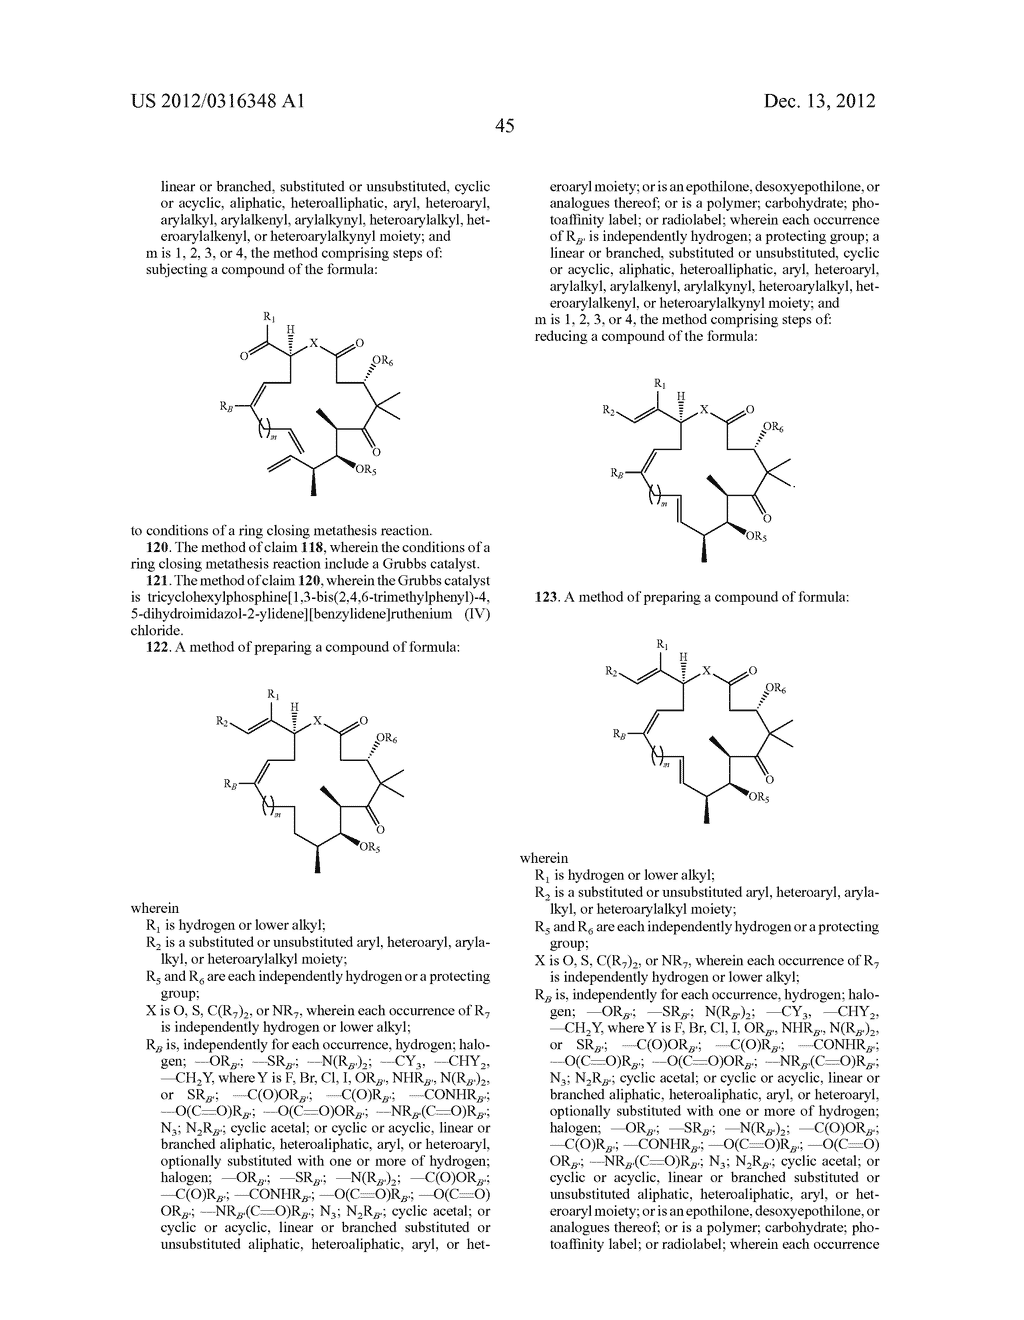 SYNTHESIS OF EPOTHILONES, INTERMEDIATES THERETO AND ANALOGUES THEREOF - diagram, schematic, and image 116